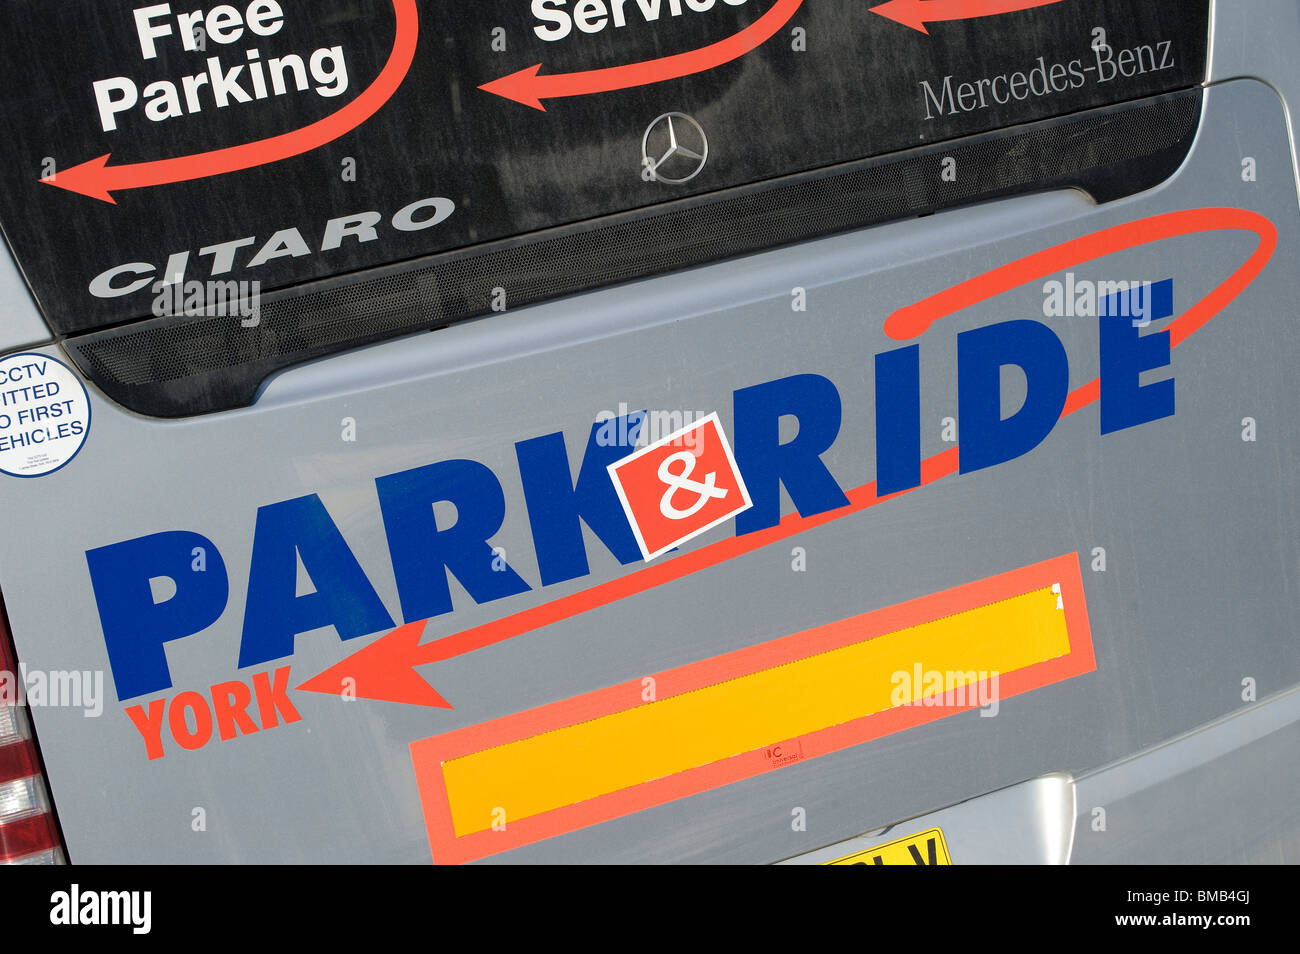 Graphics and text on the back of a park and ride bus - Stock Image